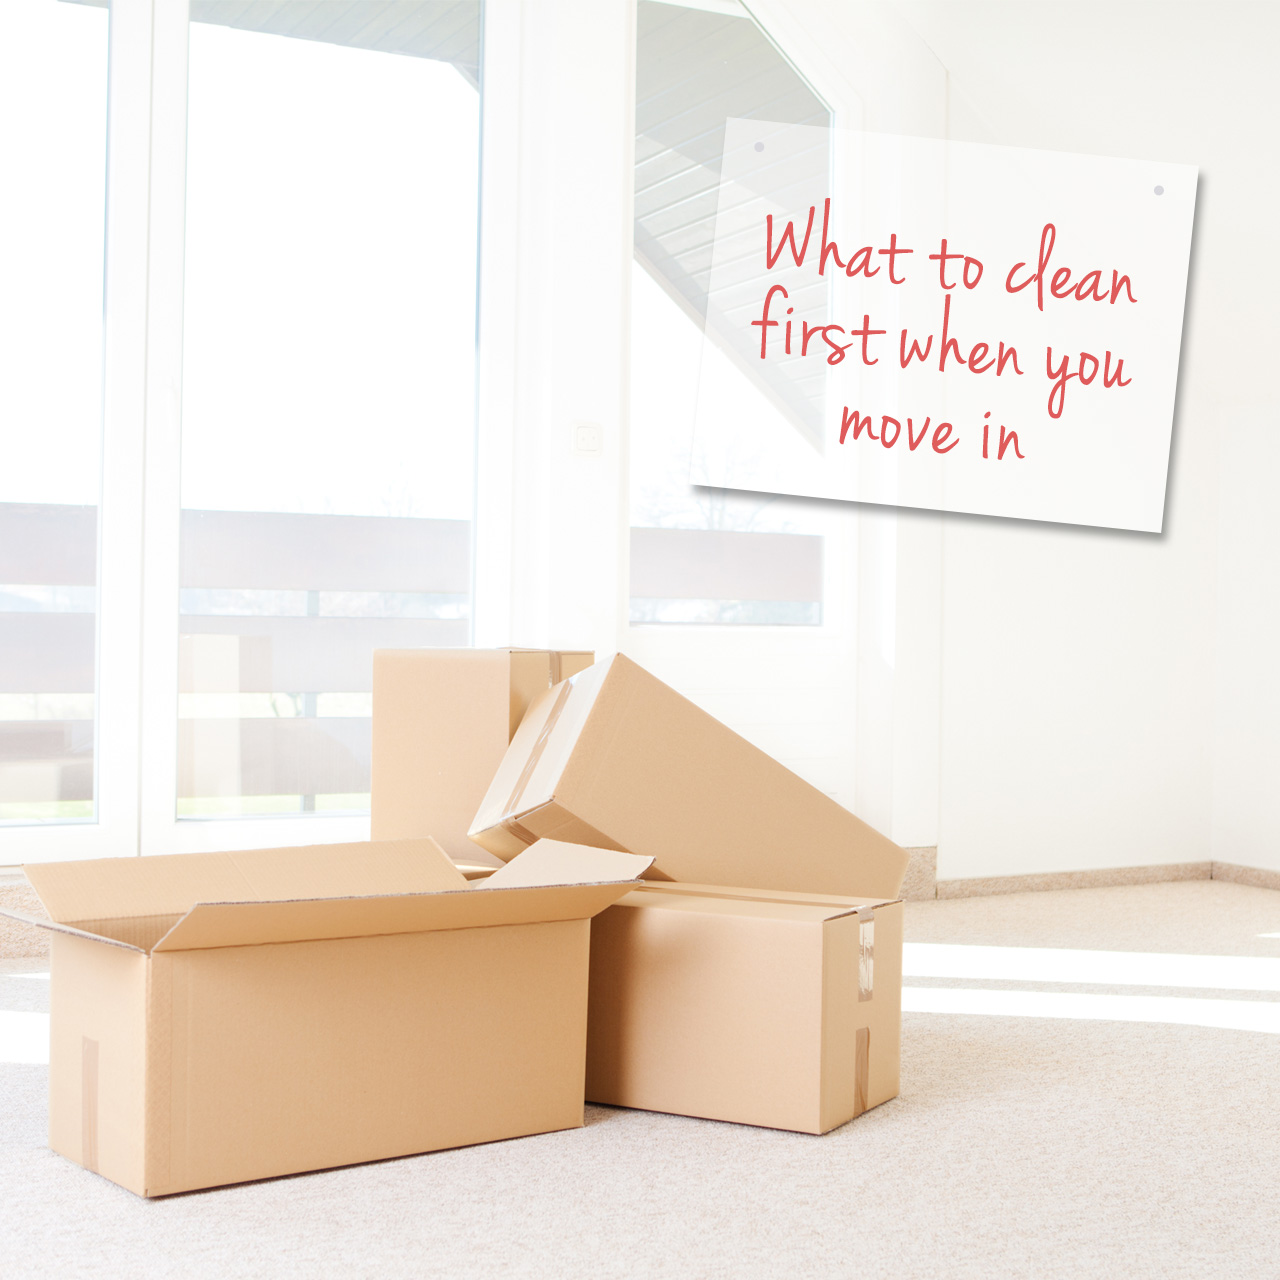 move in cleaning- what to clen first